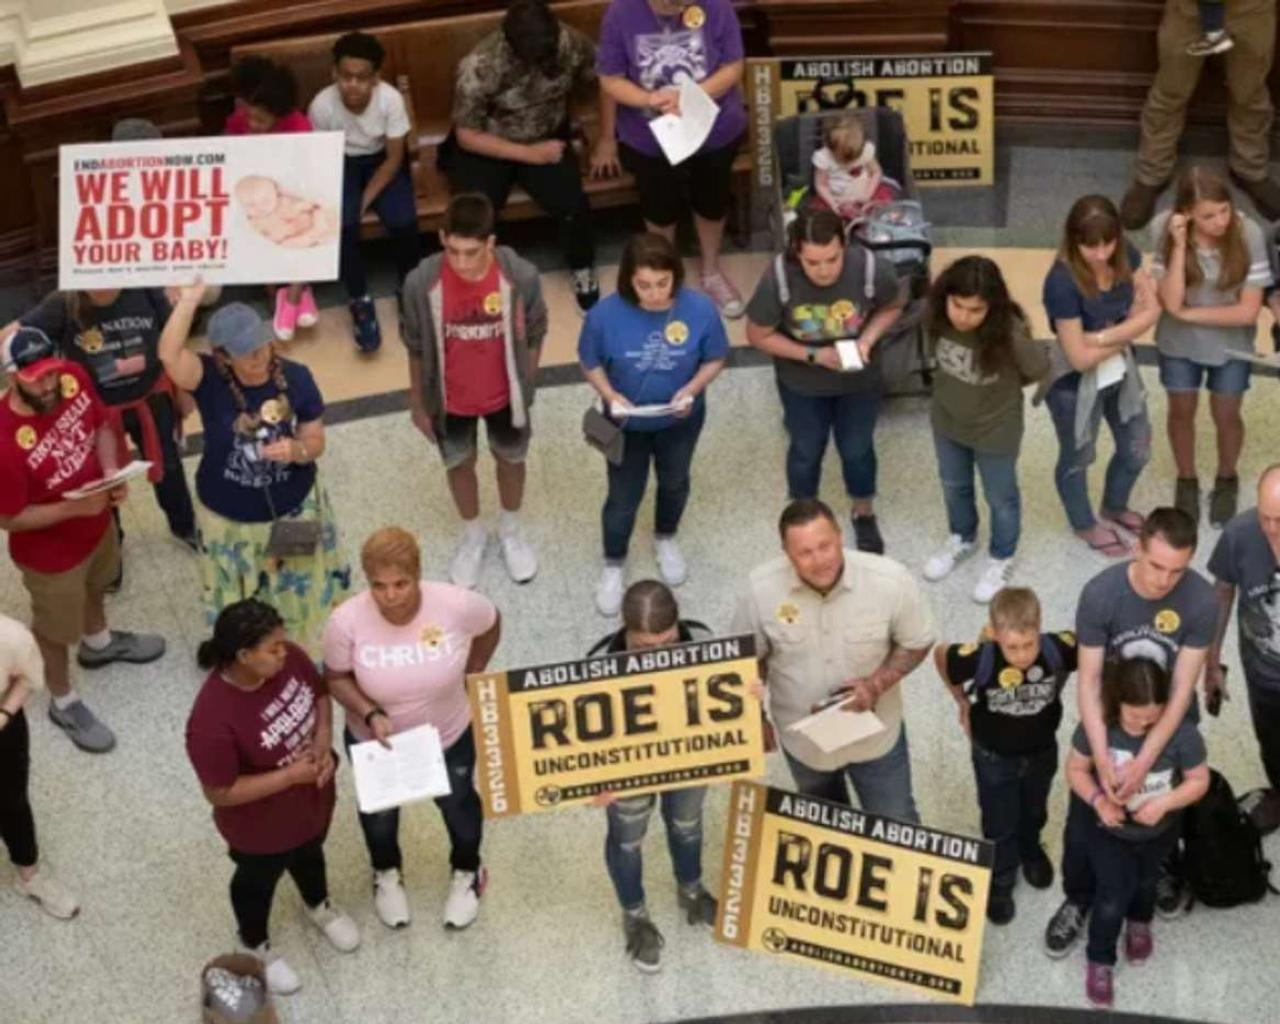 The Texas Senate has approved a ban on most abortions for Roe V. Wade.